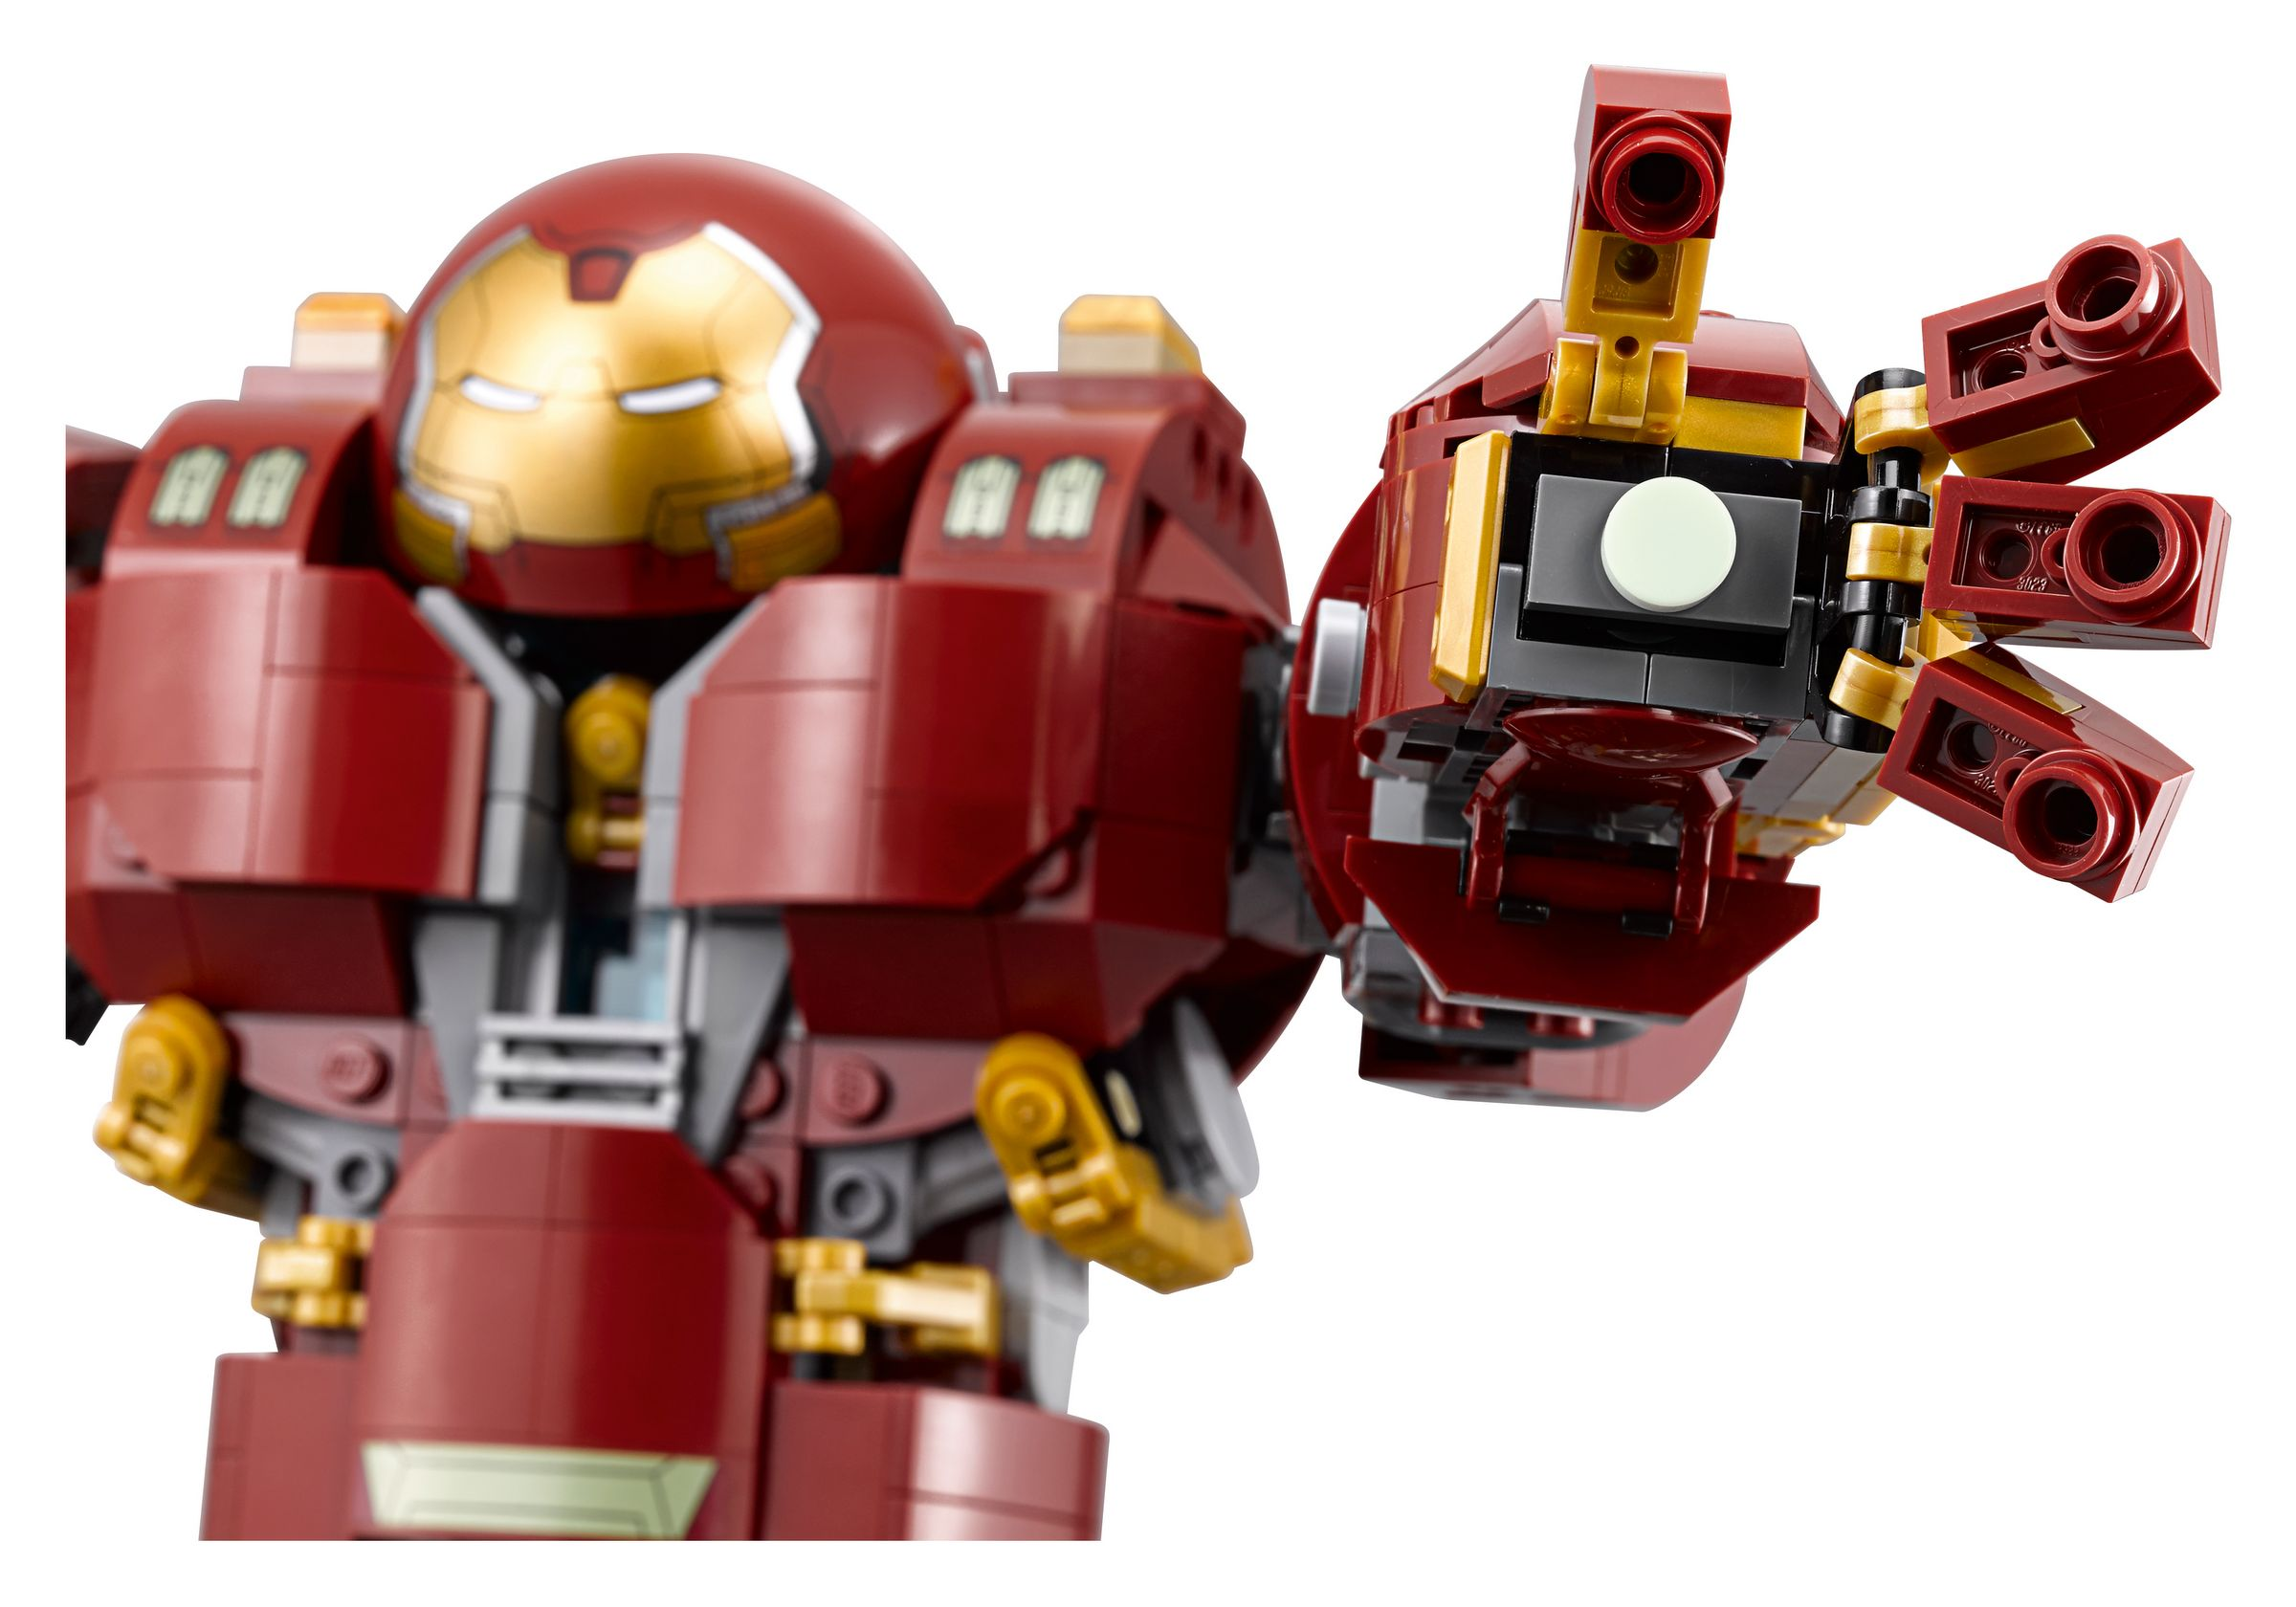 LEGO Super Heroes 76105 Marvel Avengers: Infinity War - The Hulkbuster: Ultron Edition LEGO_76105_alt6.jpg